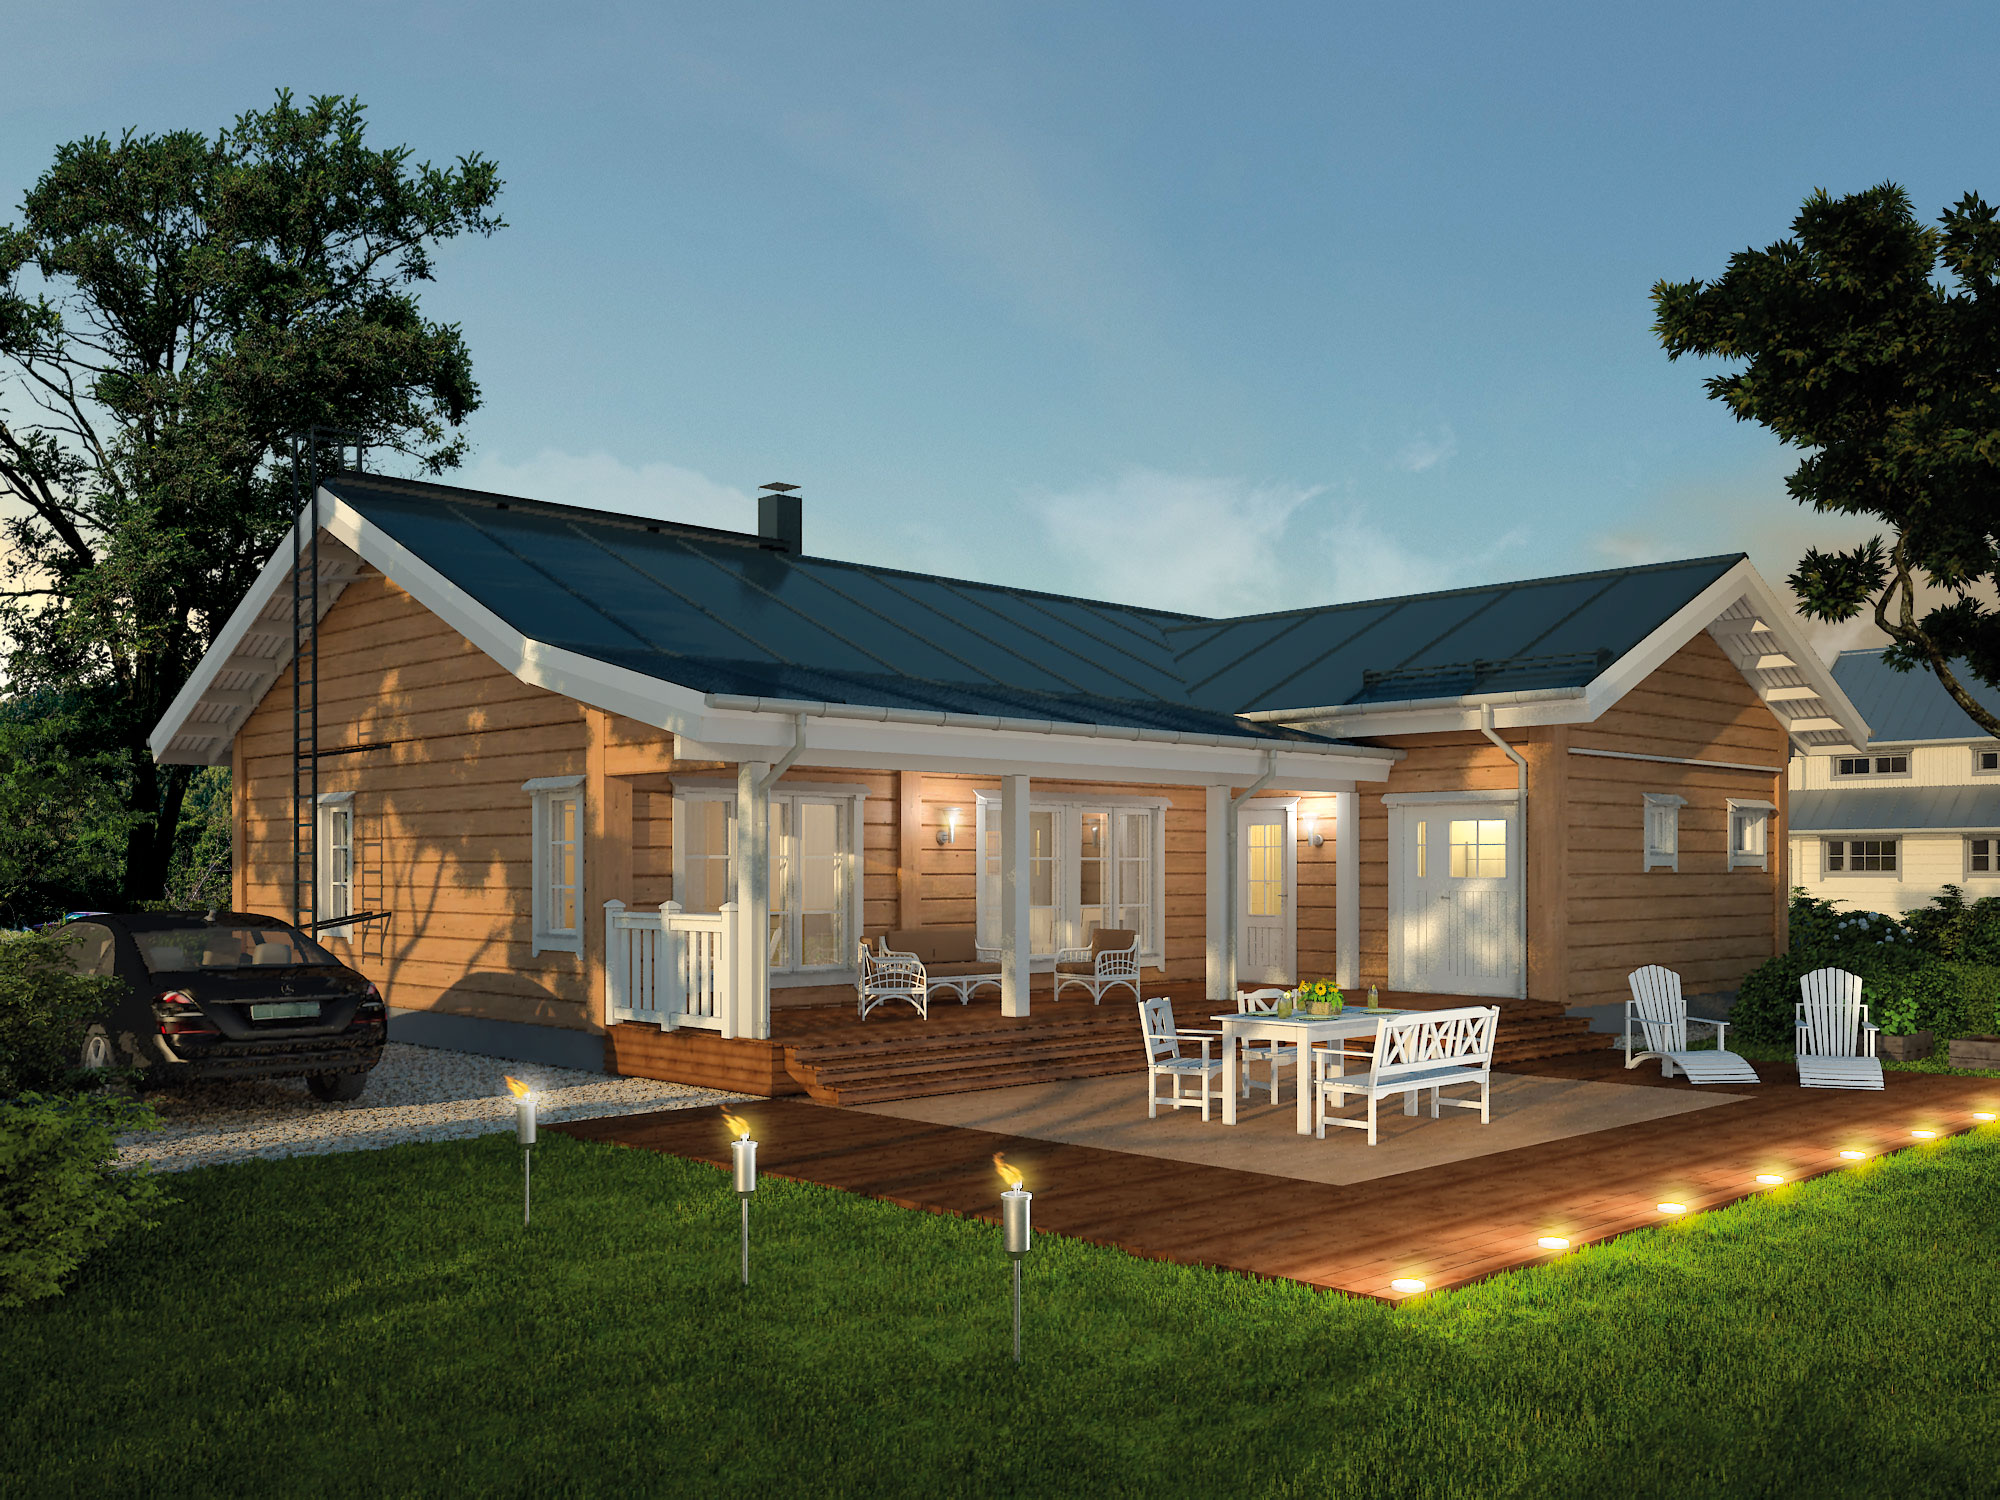 Modular Floor Plans And Prices Prefab Homes And Modern Prefabricated Panelized Home